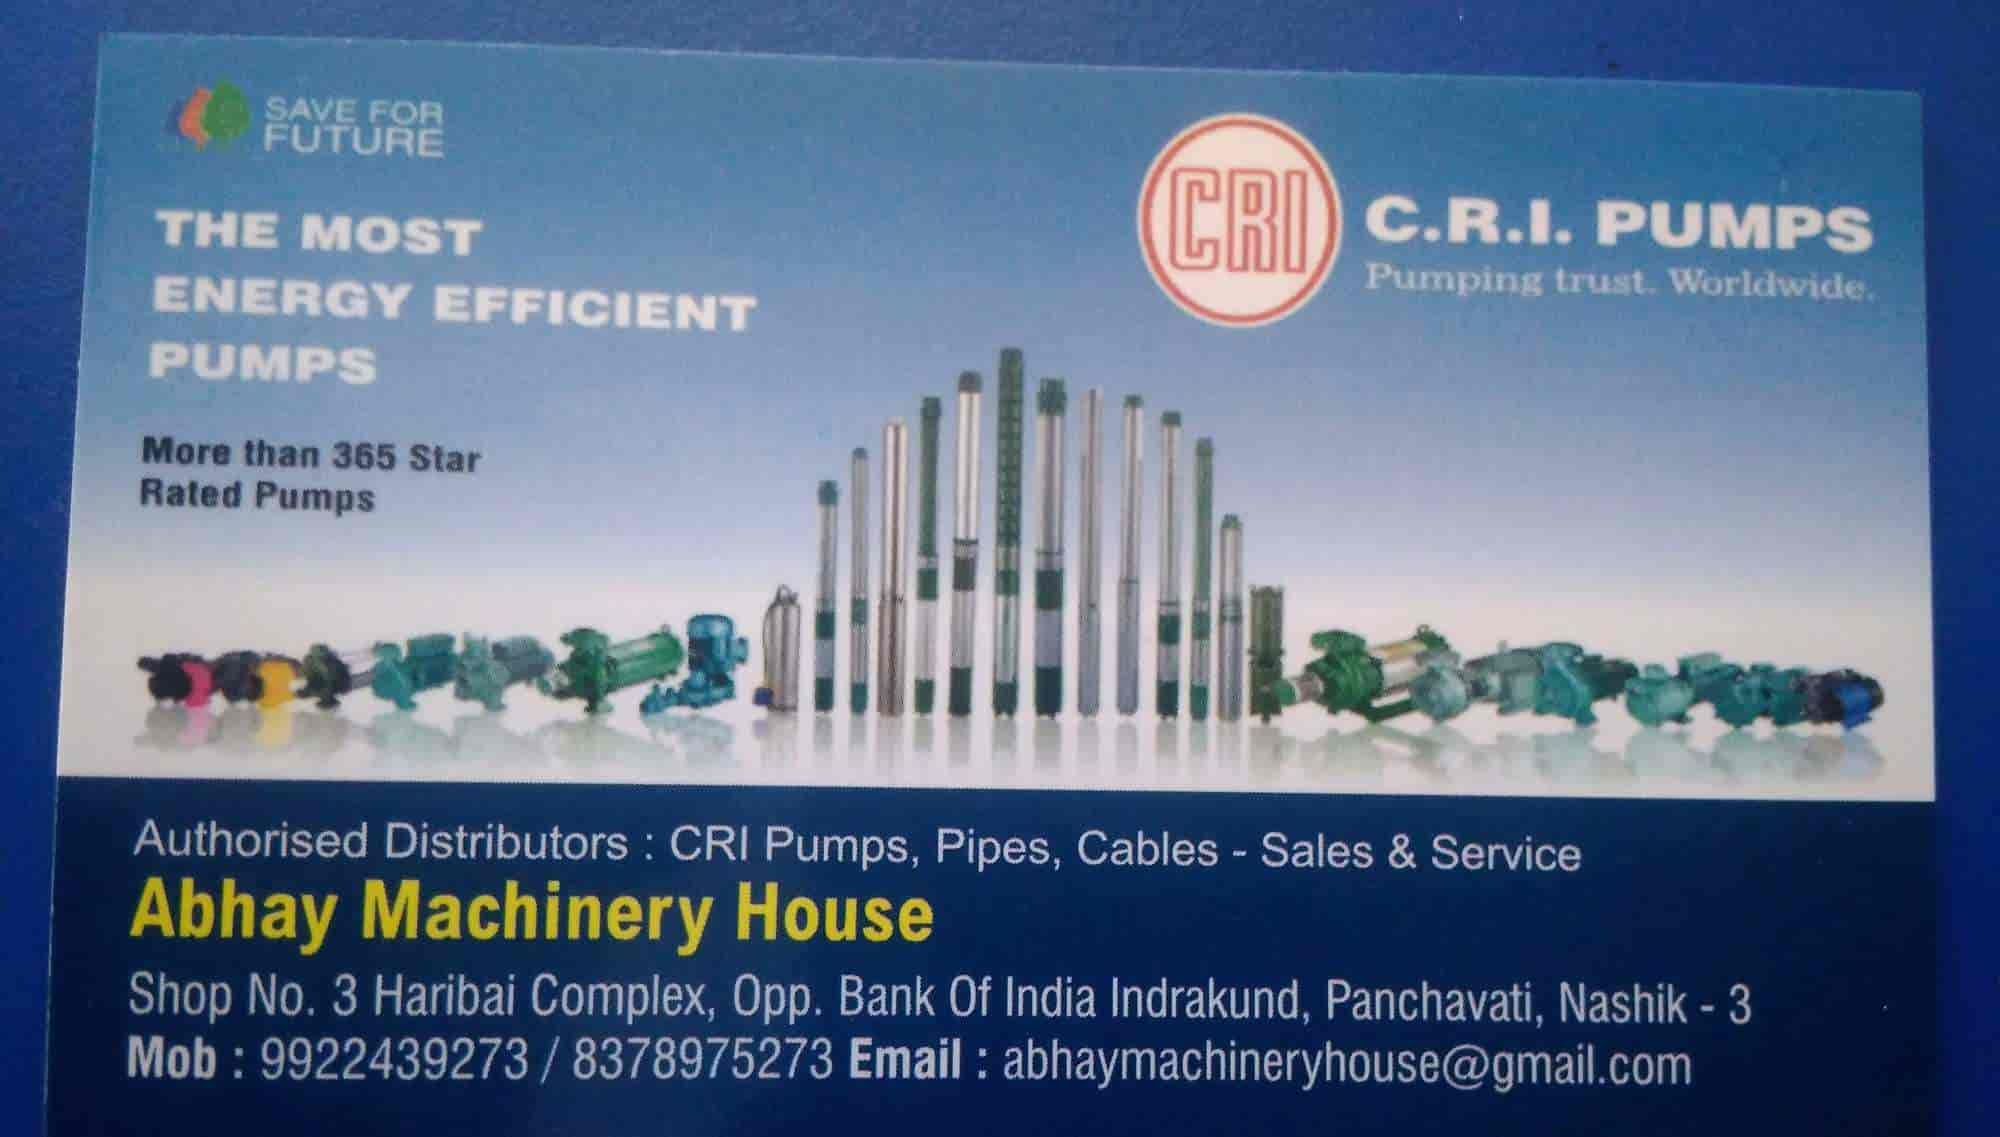 Abhay Machinery House